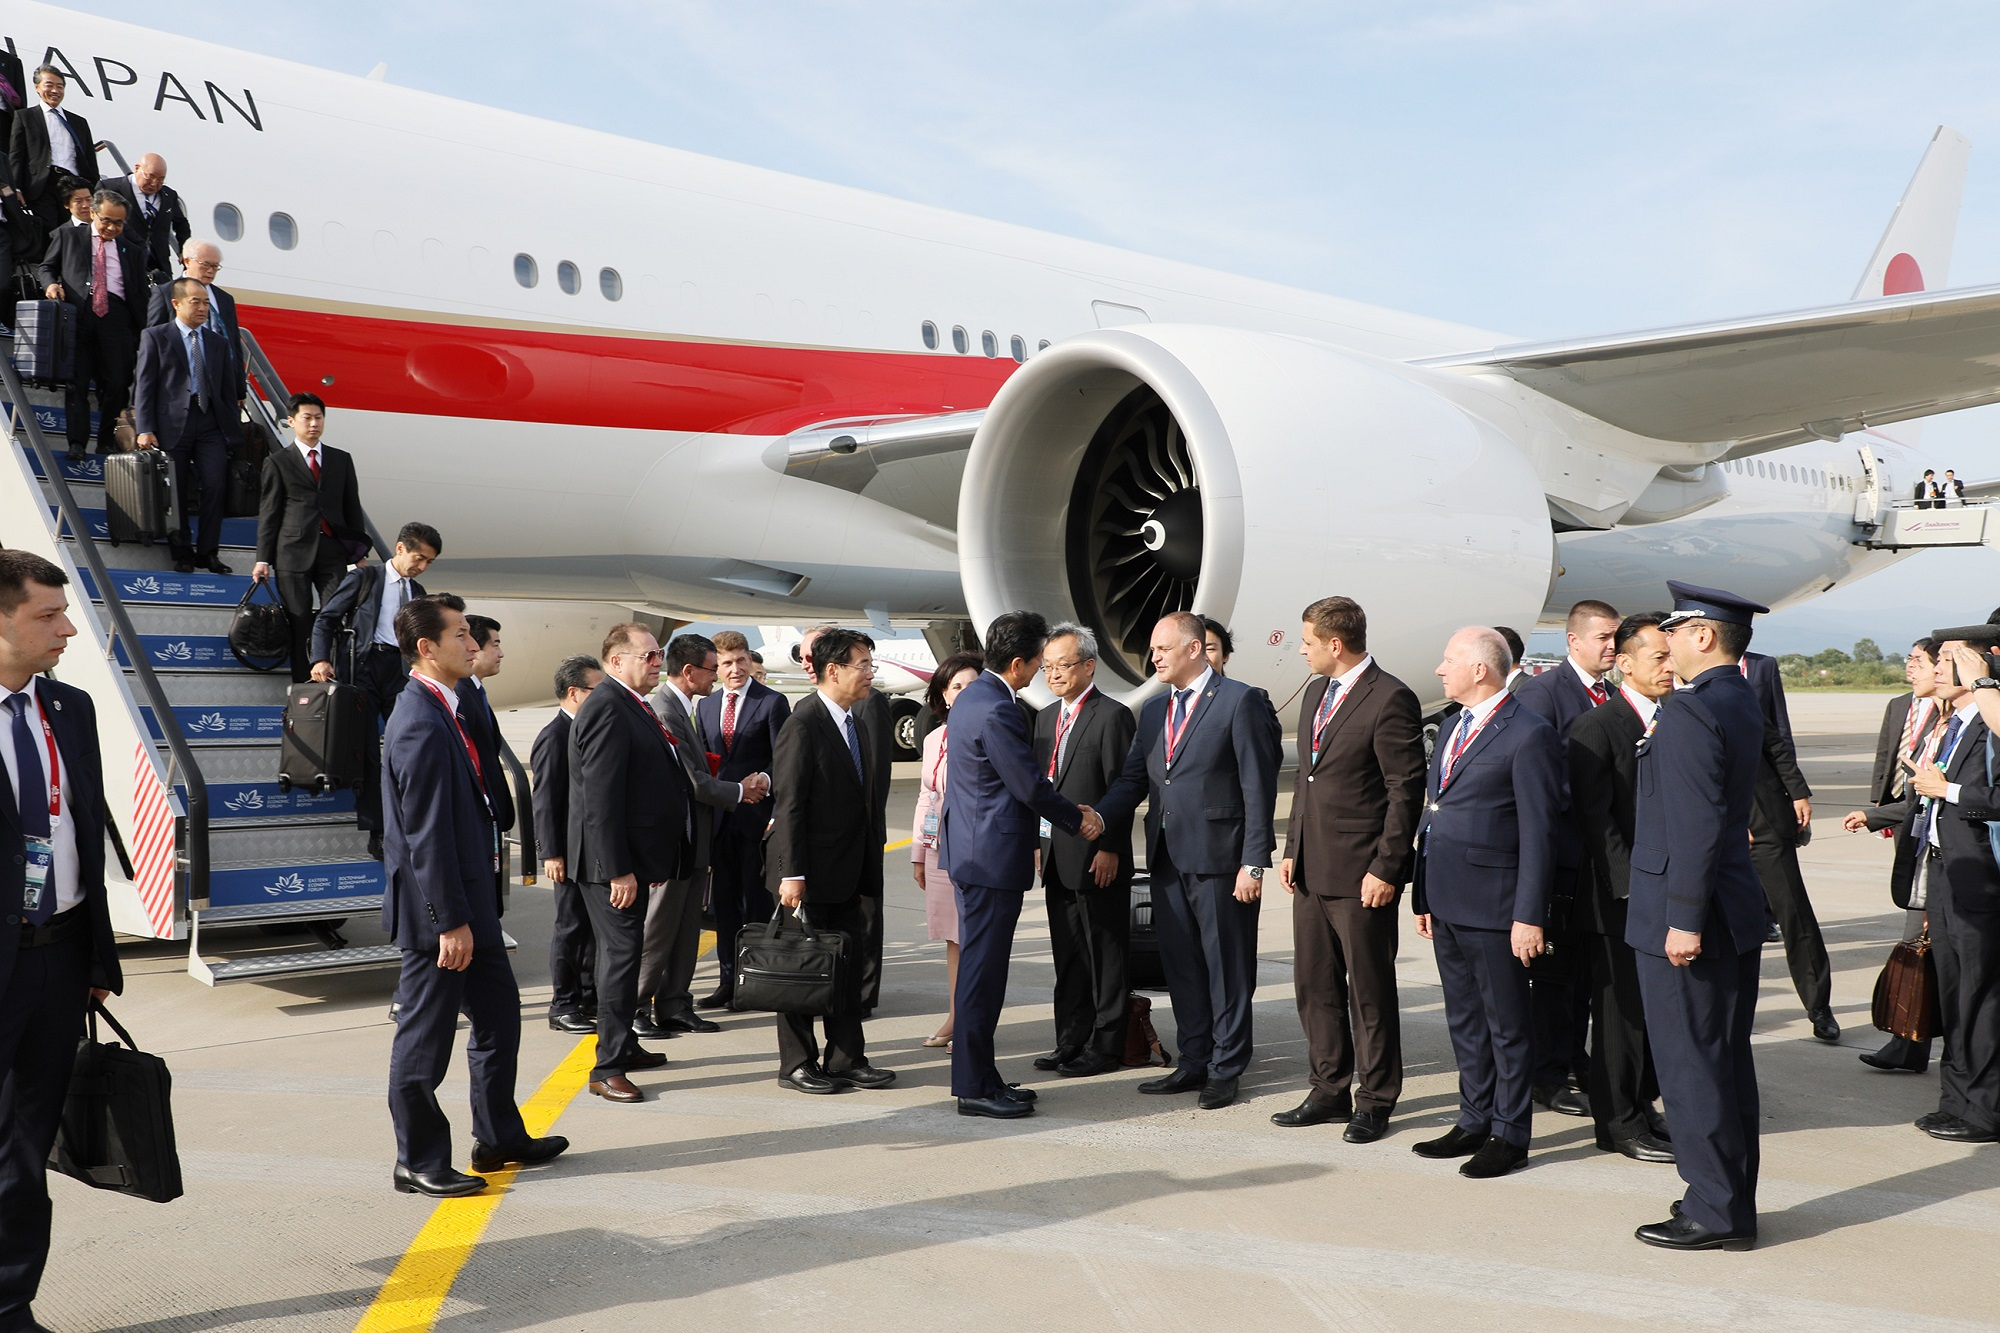 Photograph of the Prime Minister arriving in Vladivostok (2)